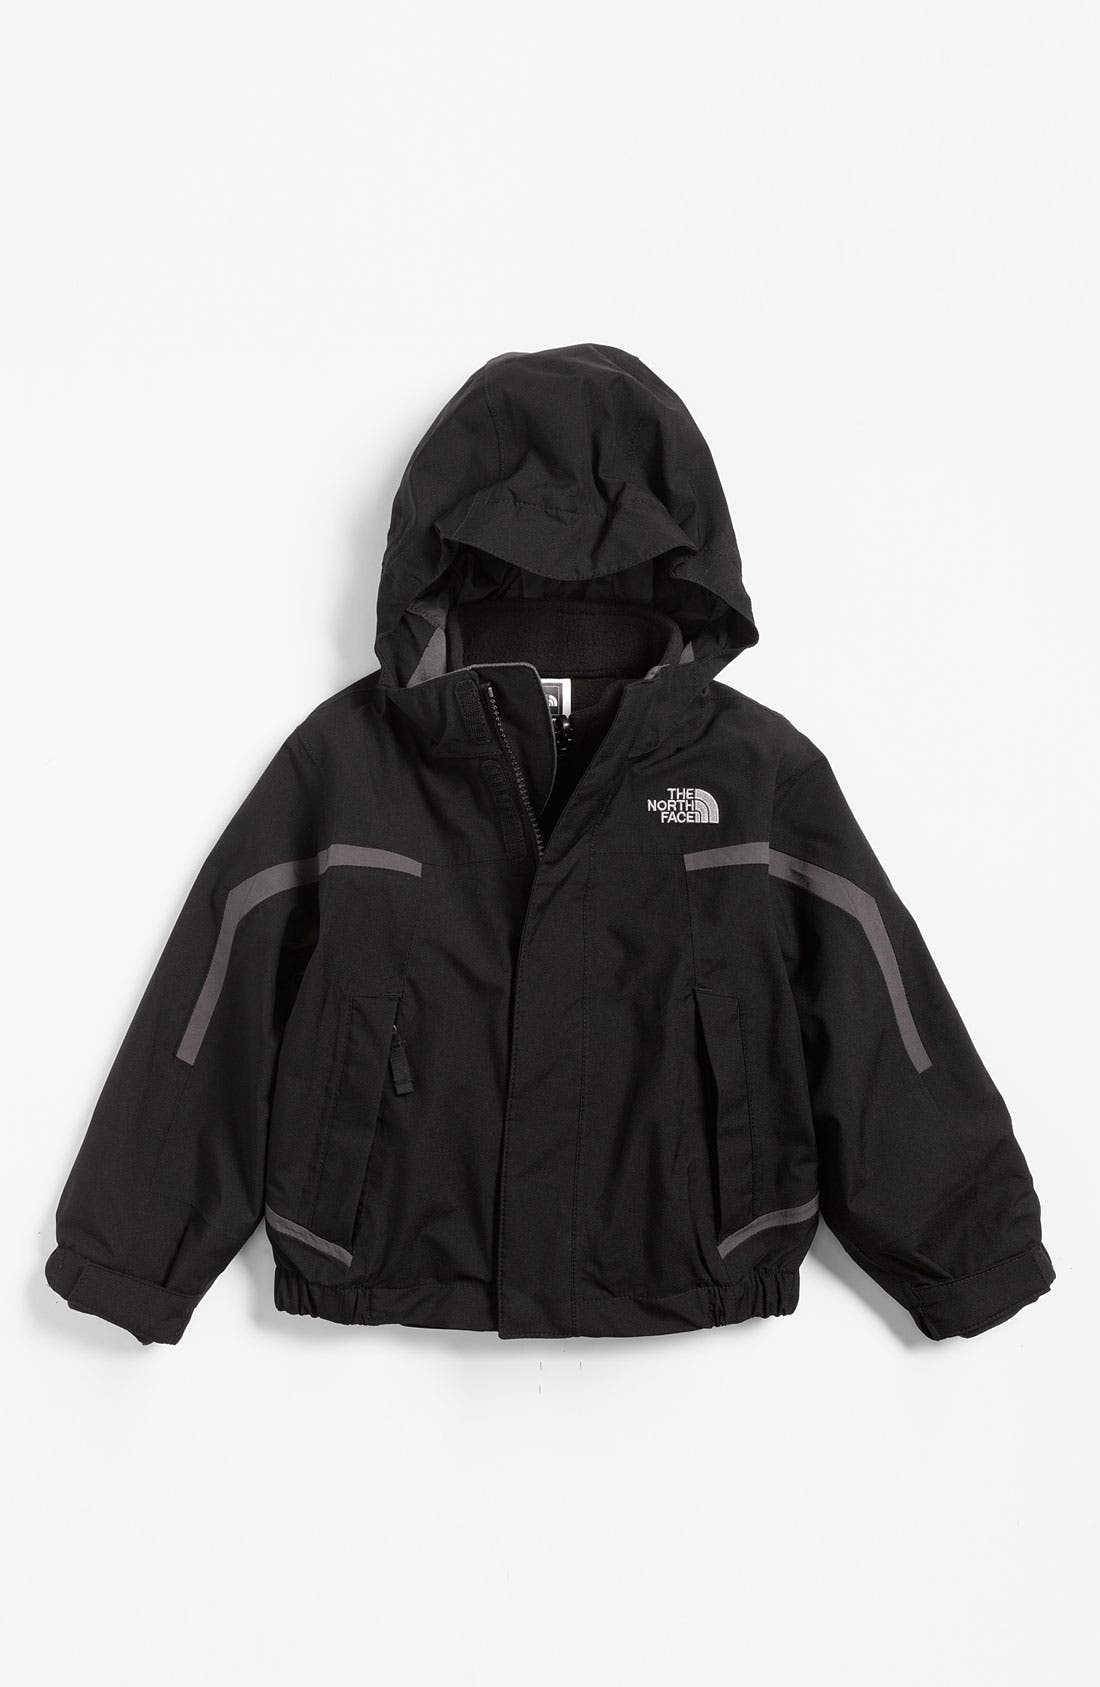 Main Image - The North Face 'Nimbostratus TriClimate®' Jacket (Toddler) (Nordstrom Exclusive)